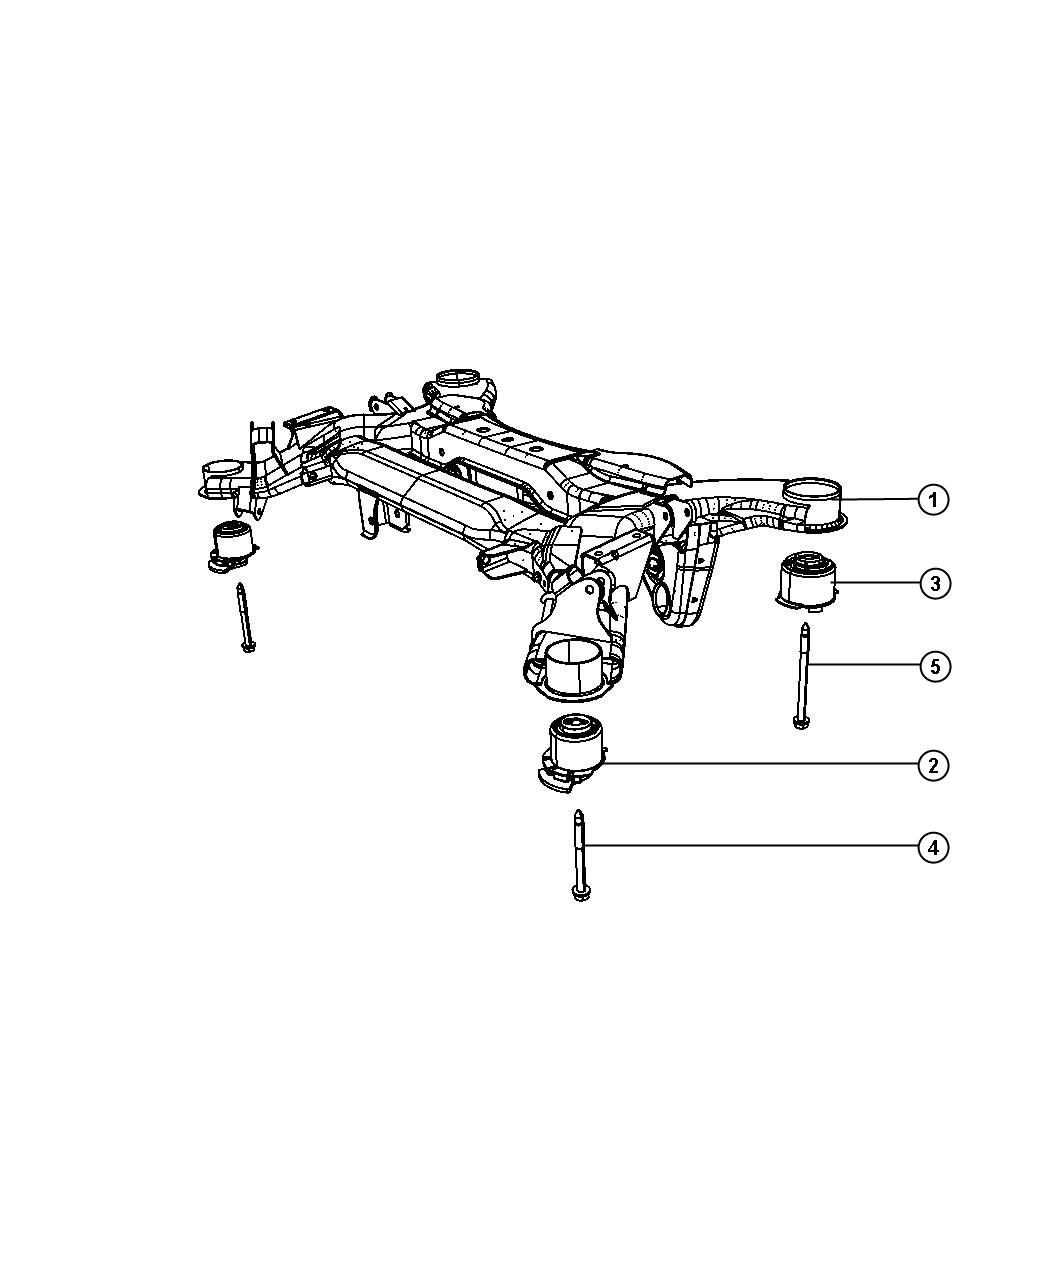 cradle crossmember rear suspension fits chrysler pacifica 2008. Cars Review. Best American Auto & Cars Review